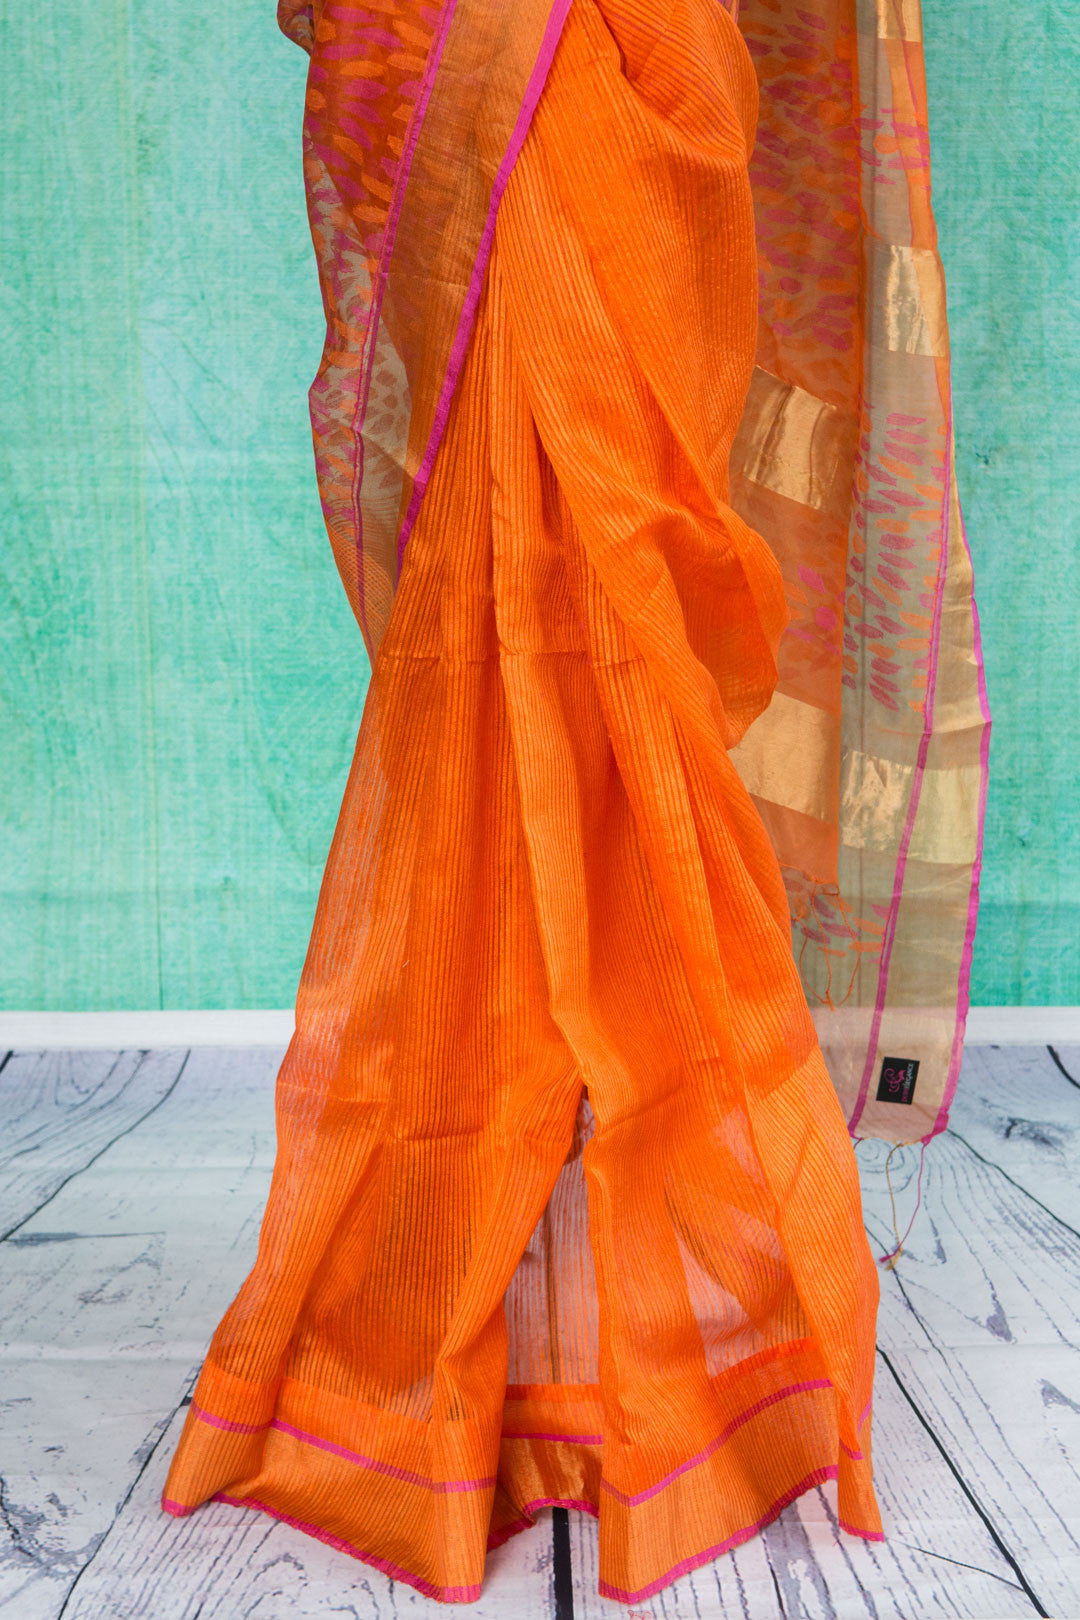 90c009 Bright orange saree with a golden border with pink trim. Buy this classic matka silk saree, ideal for festive occasions at Pure Elegance, our Indian clothing store in USA. This one's a saree for all seasons and occasions!